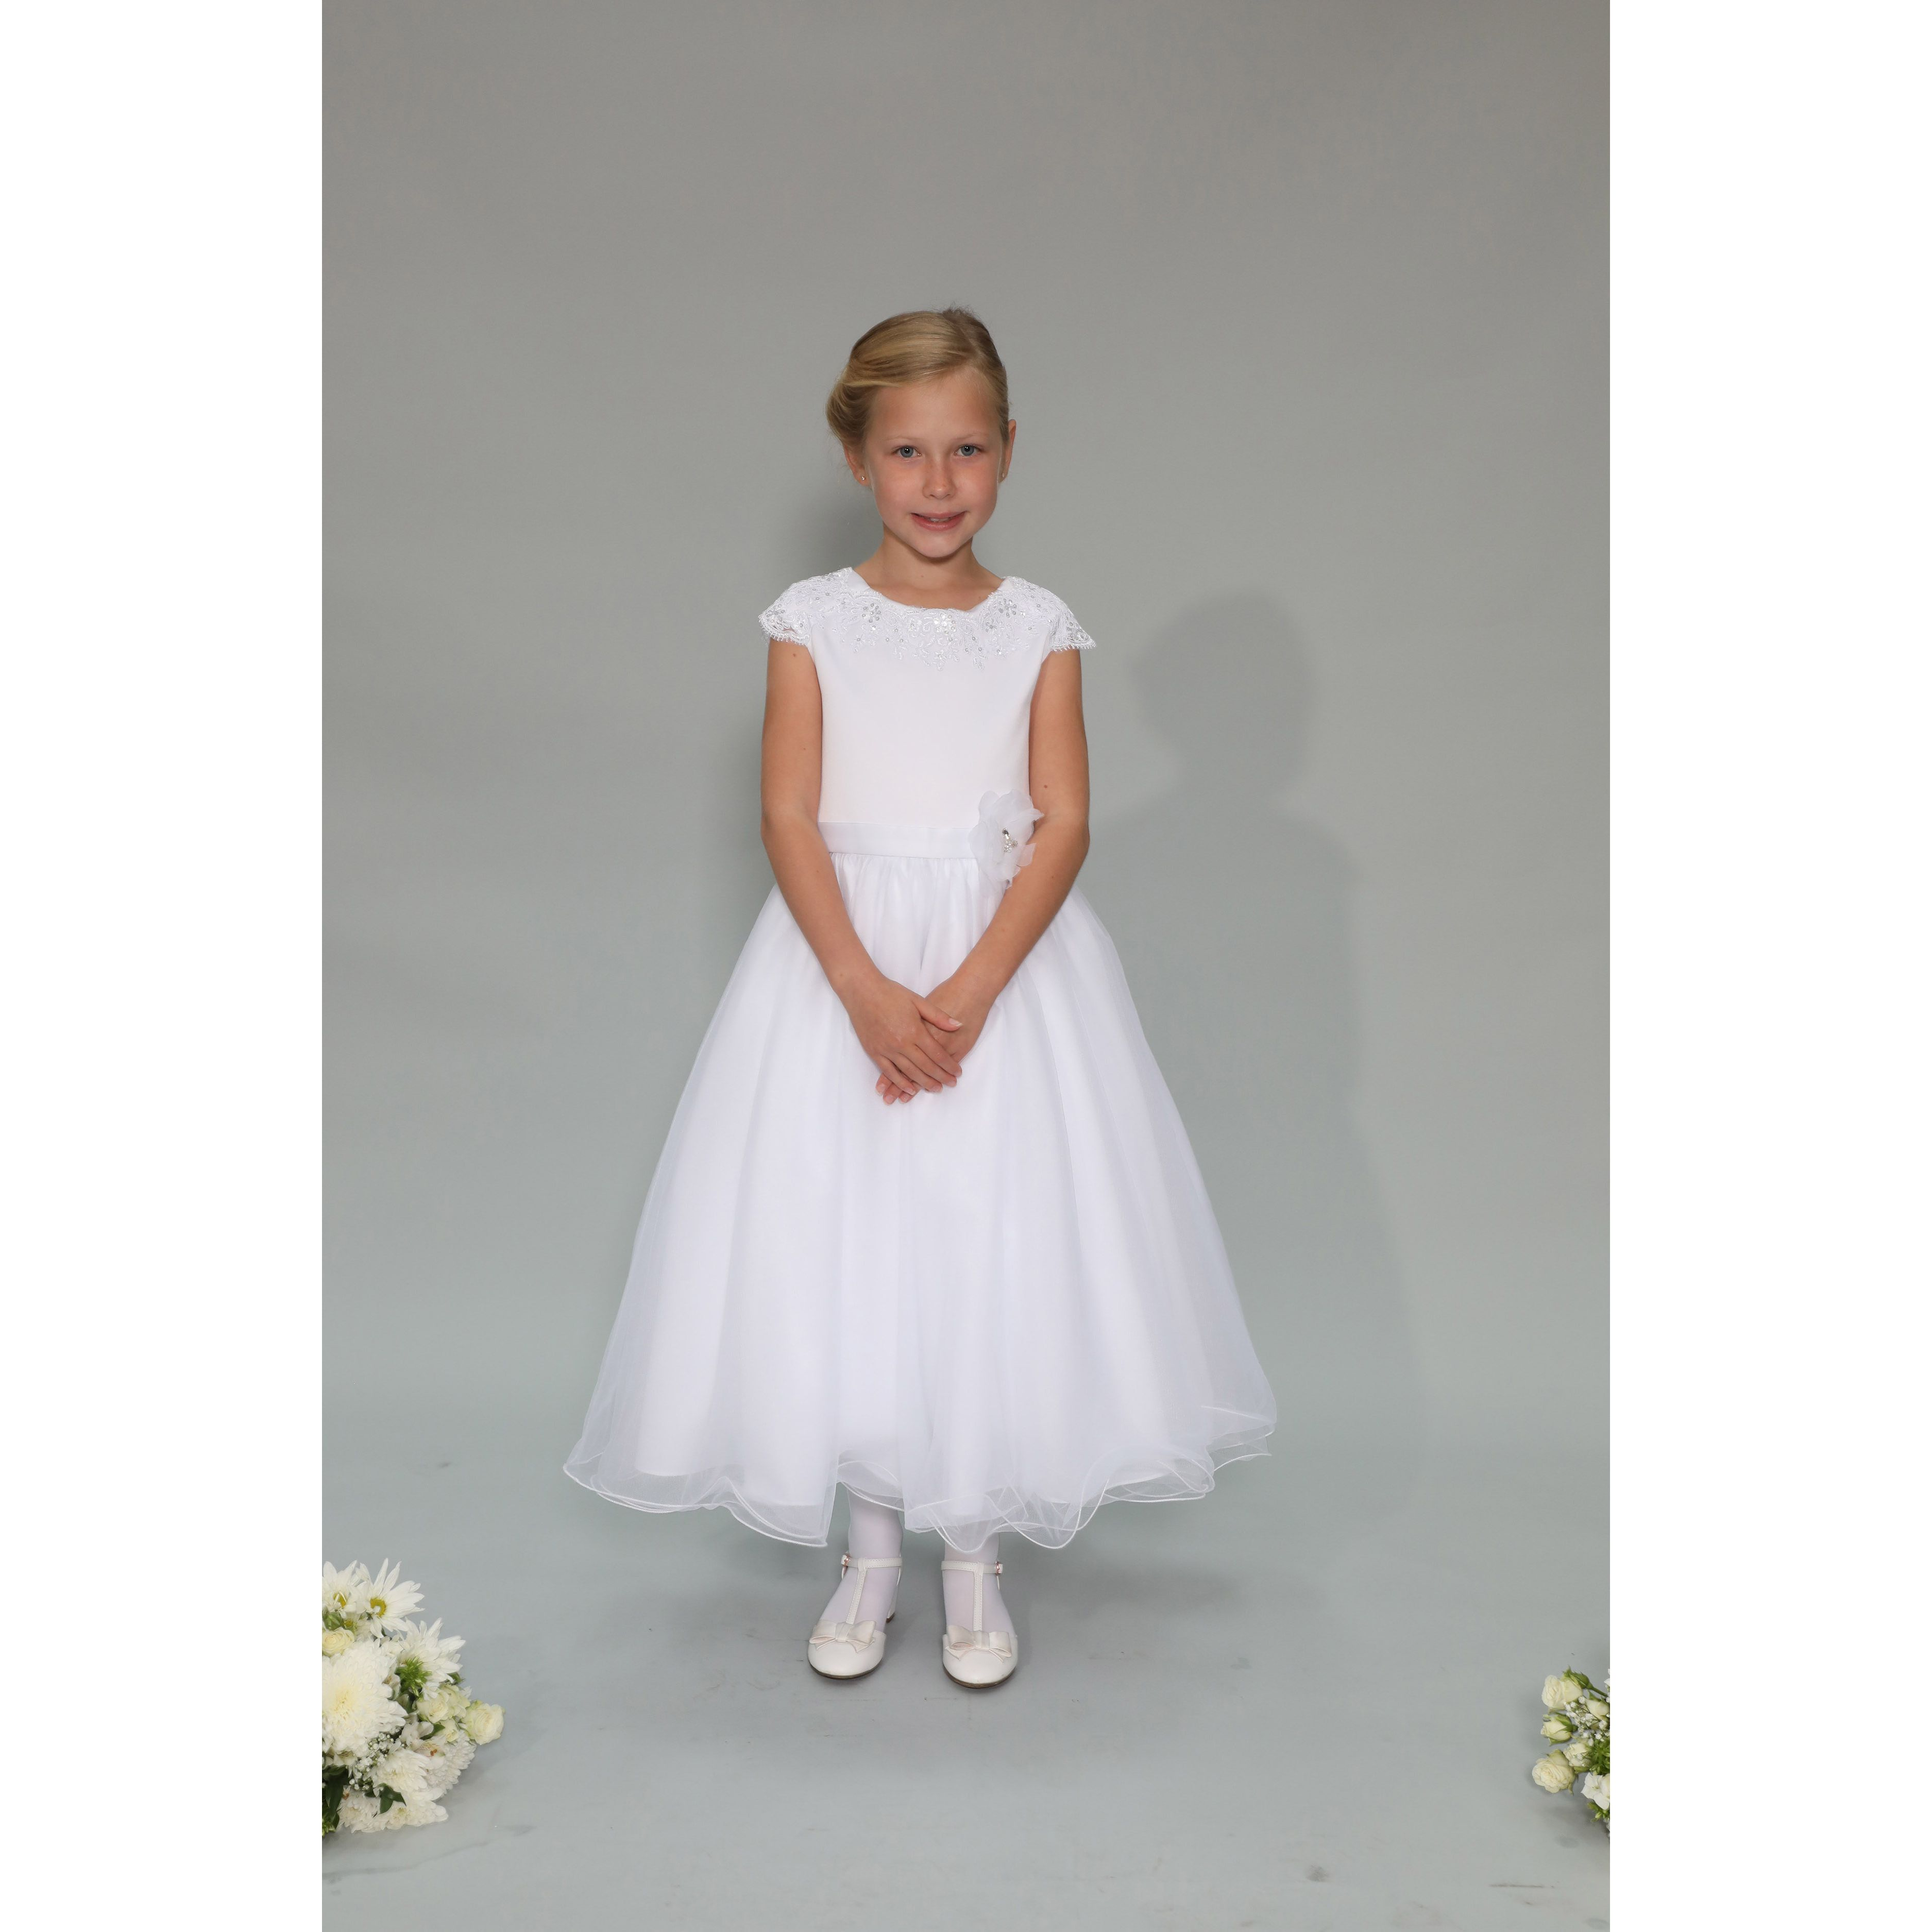 76f2d713eb 3052T Sweetie Pie Collection First Communion Communion Dress. Availability   2 item(s). CODE  SPC-3052T